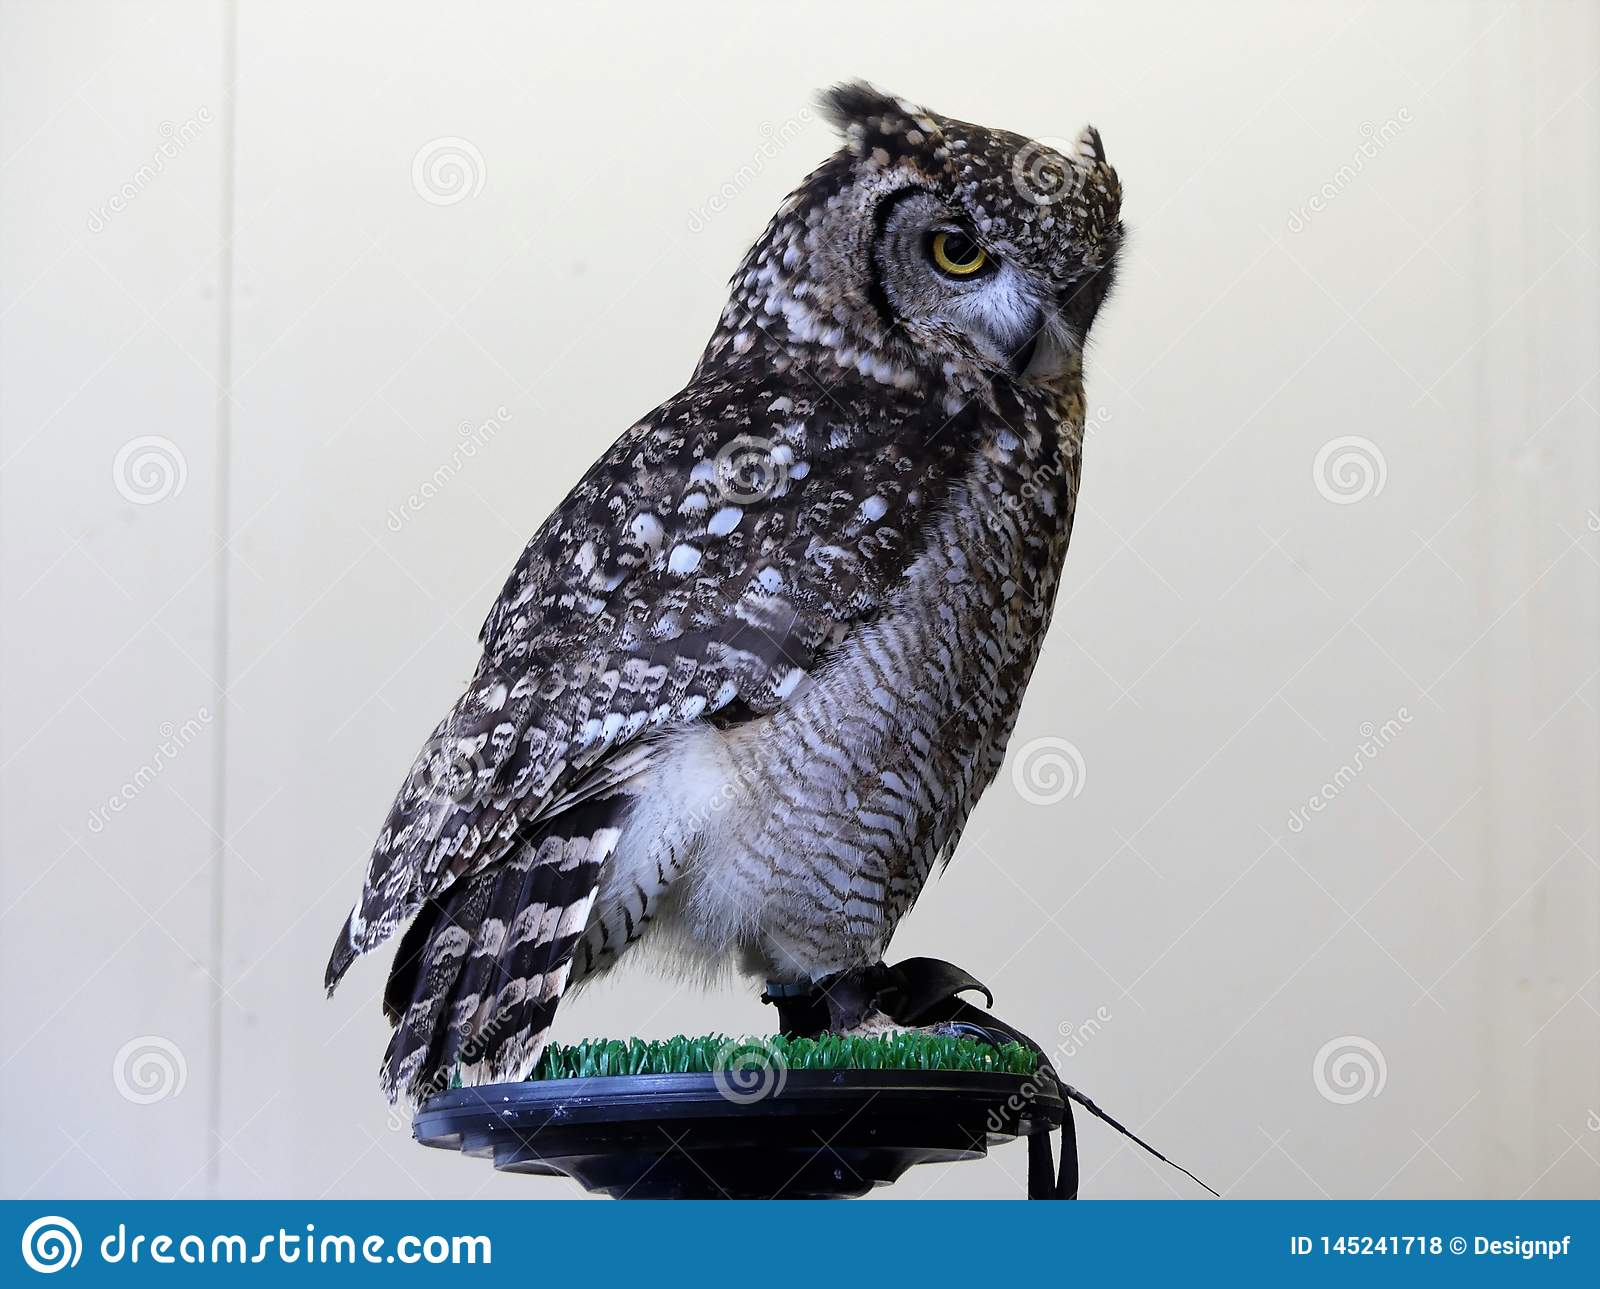 African eagle owl sitting on perch